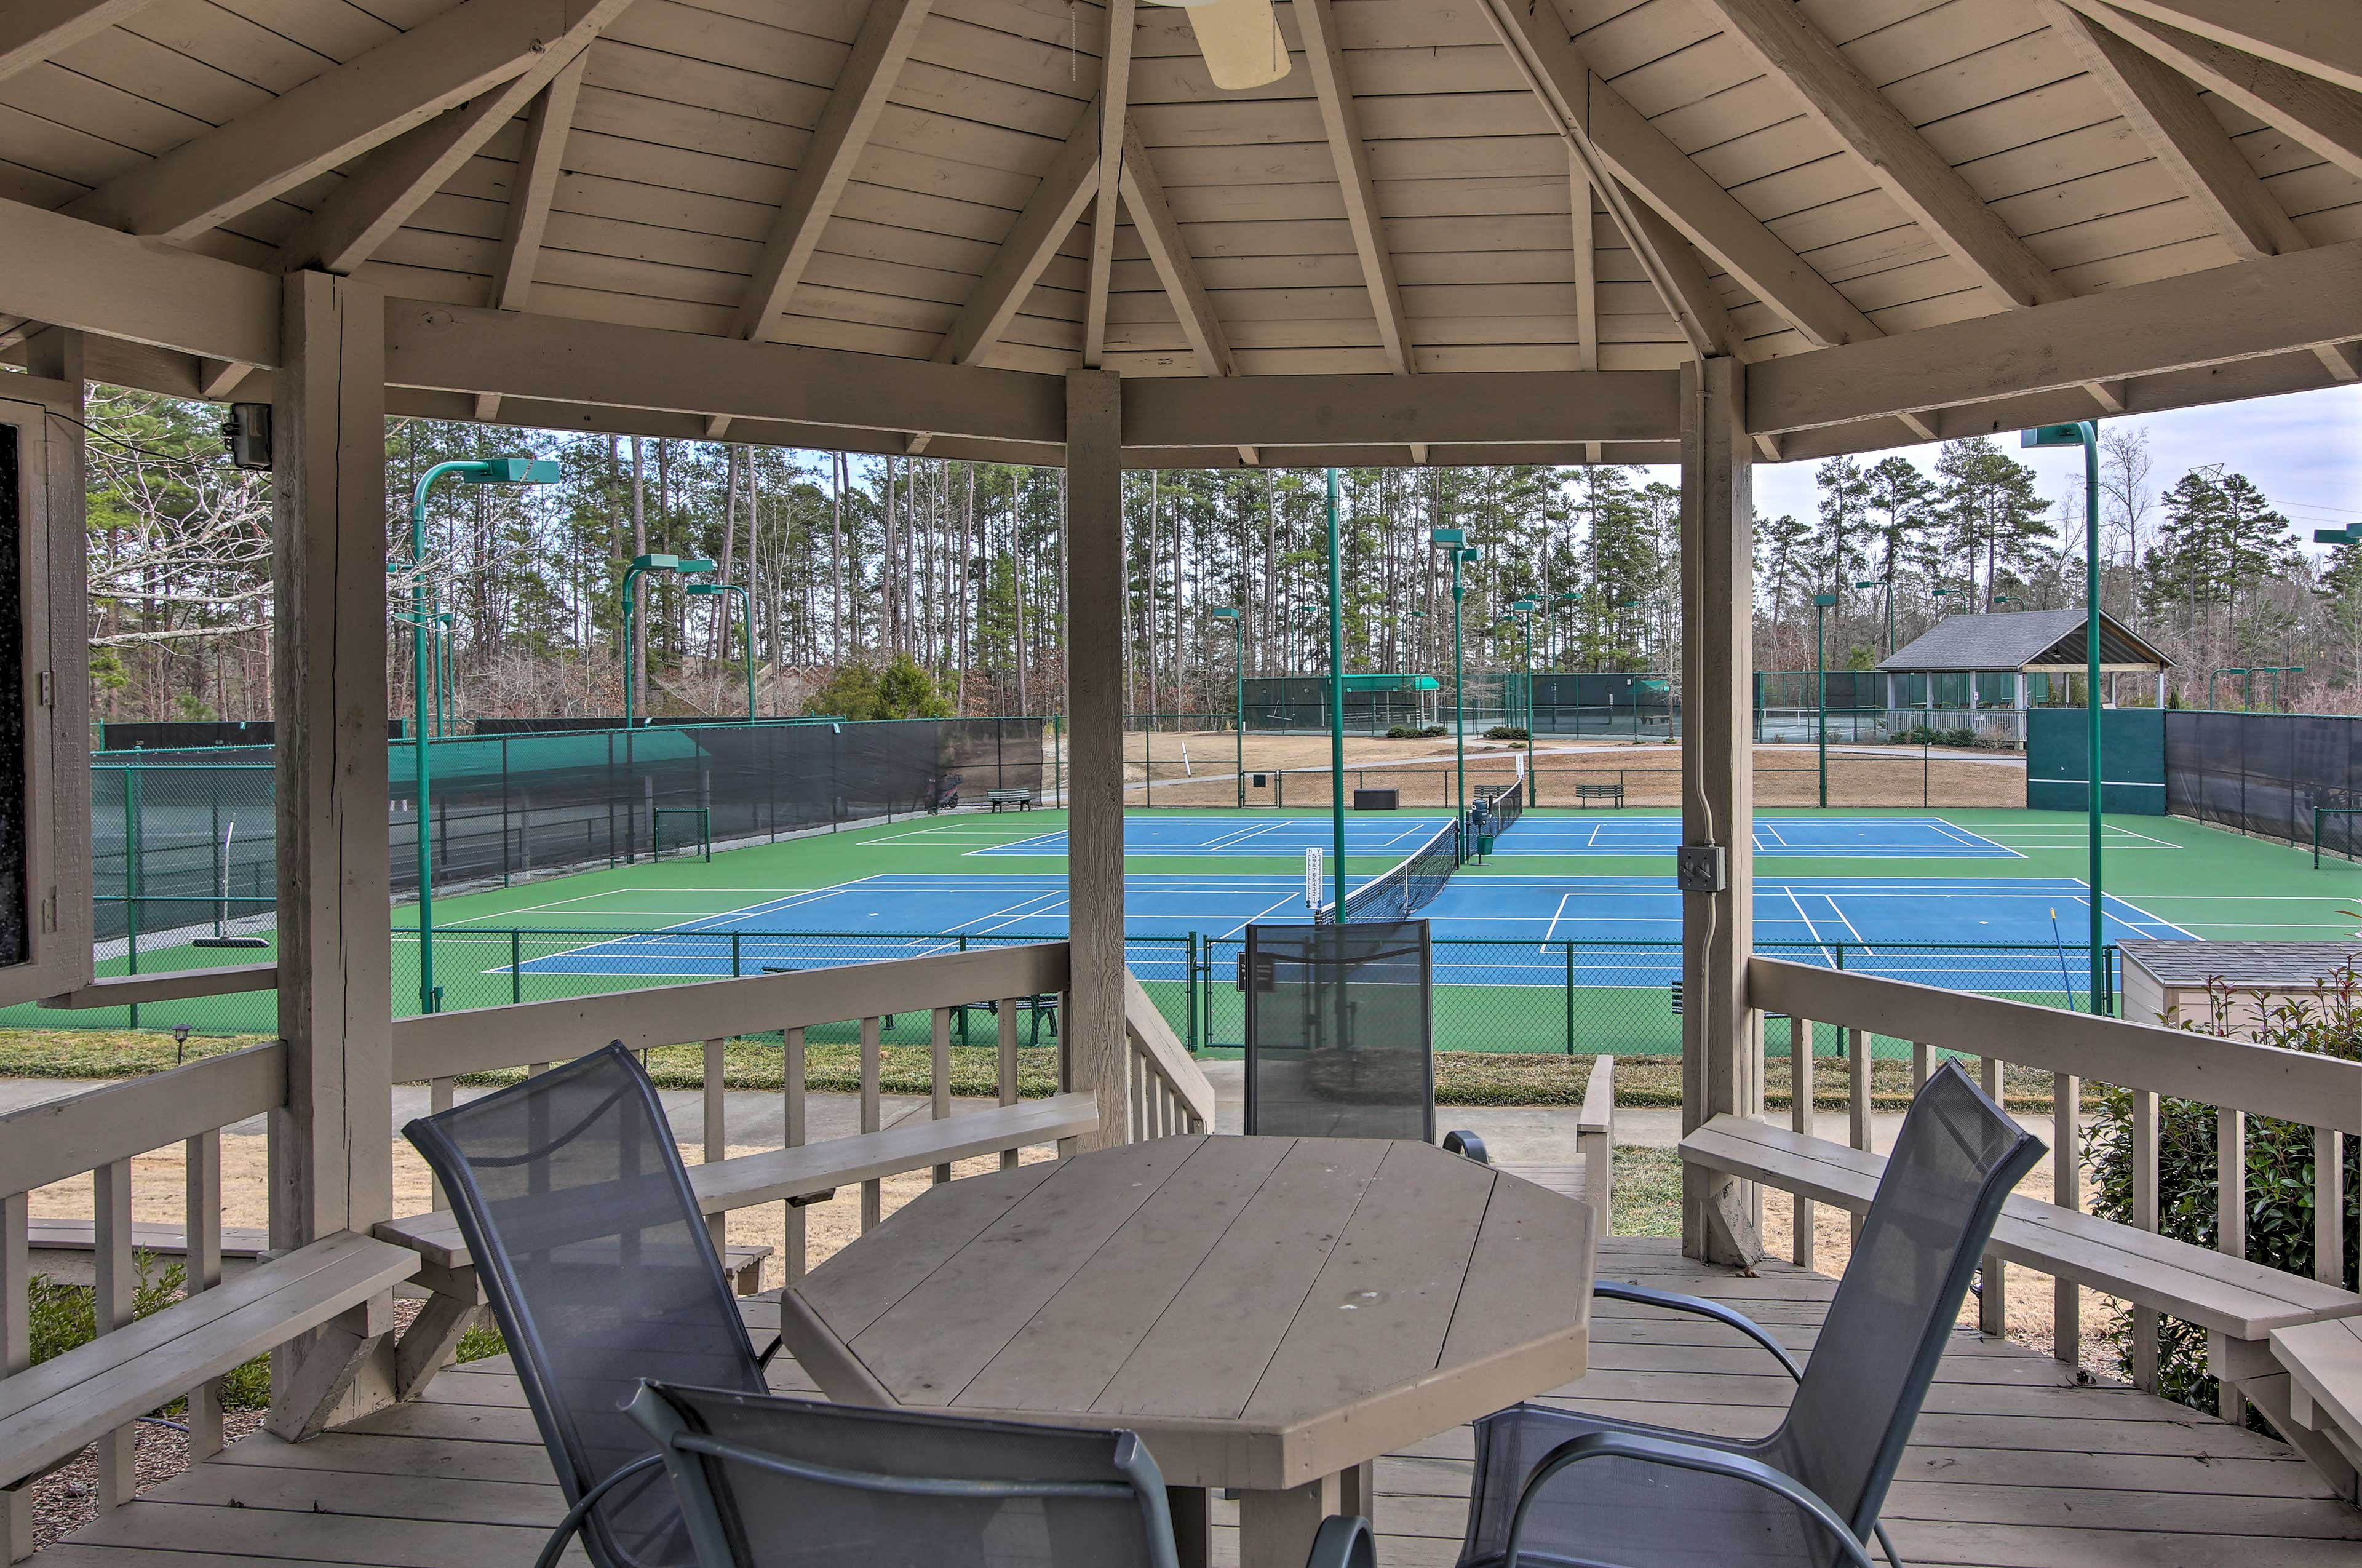 Stop your tennis match for a quick snack and a drink at the gazebo table.